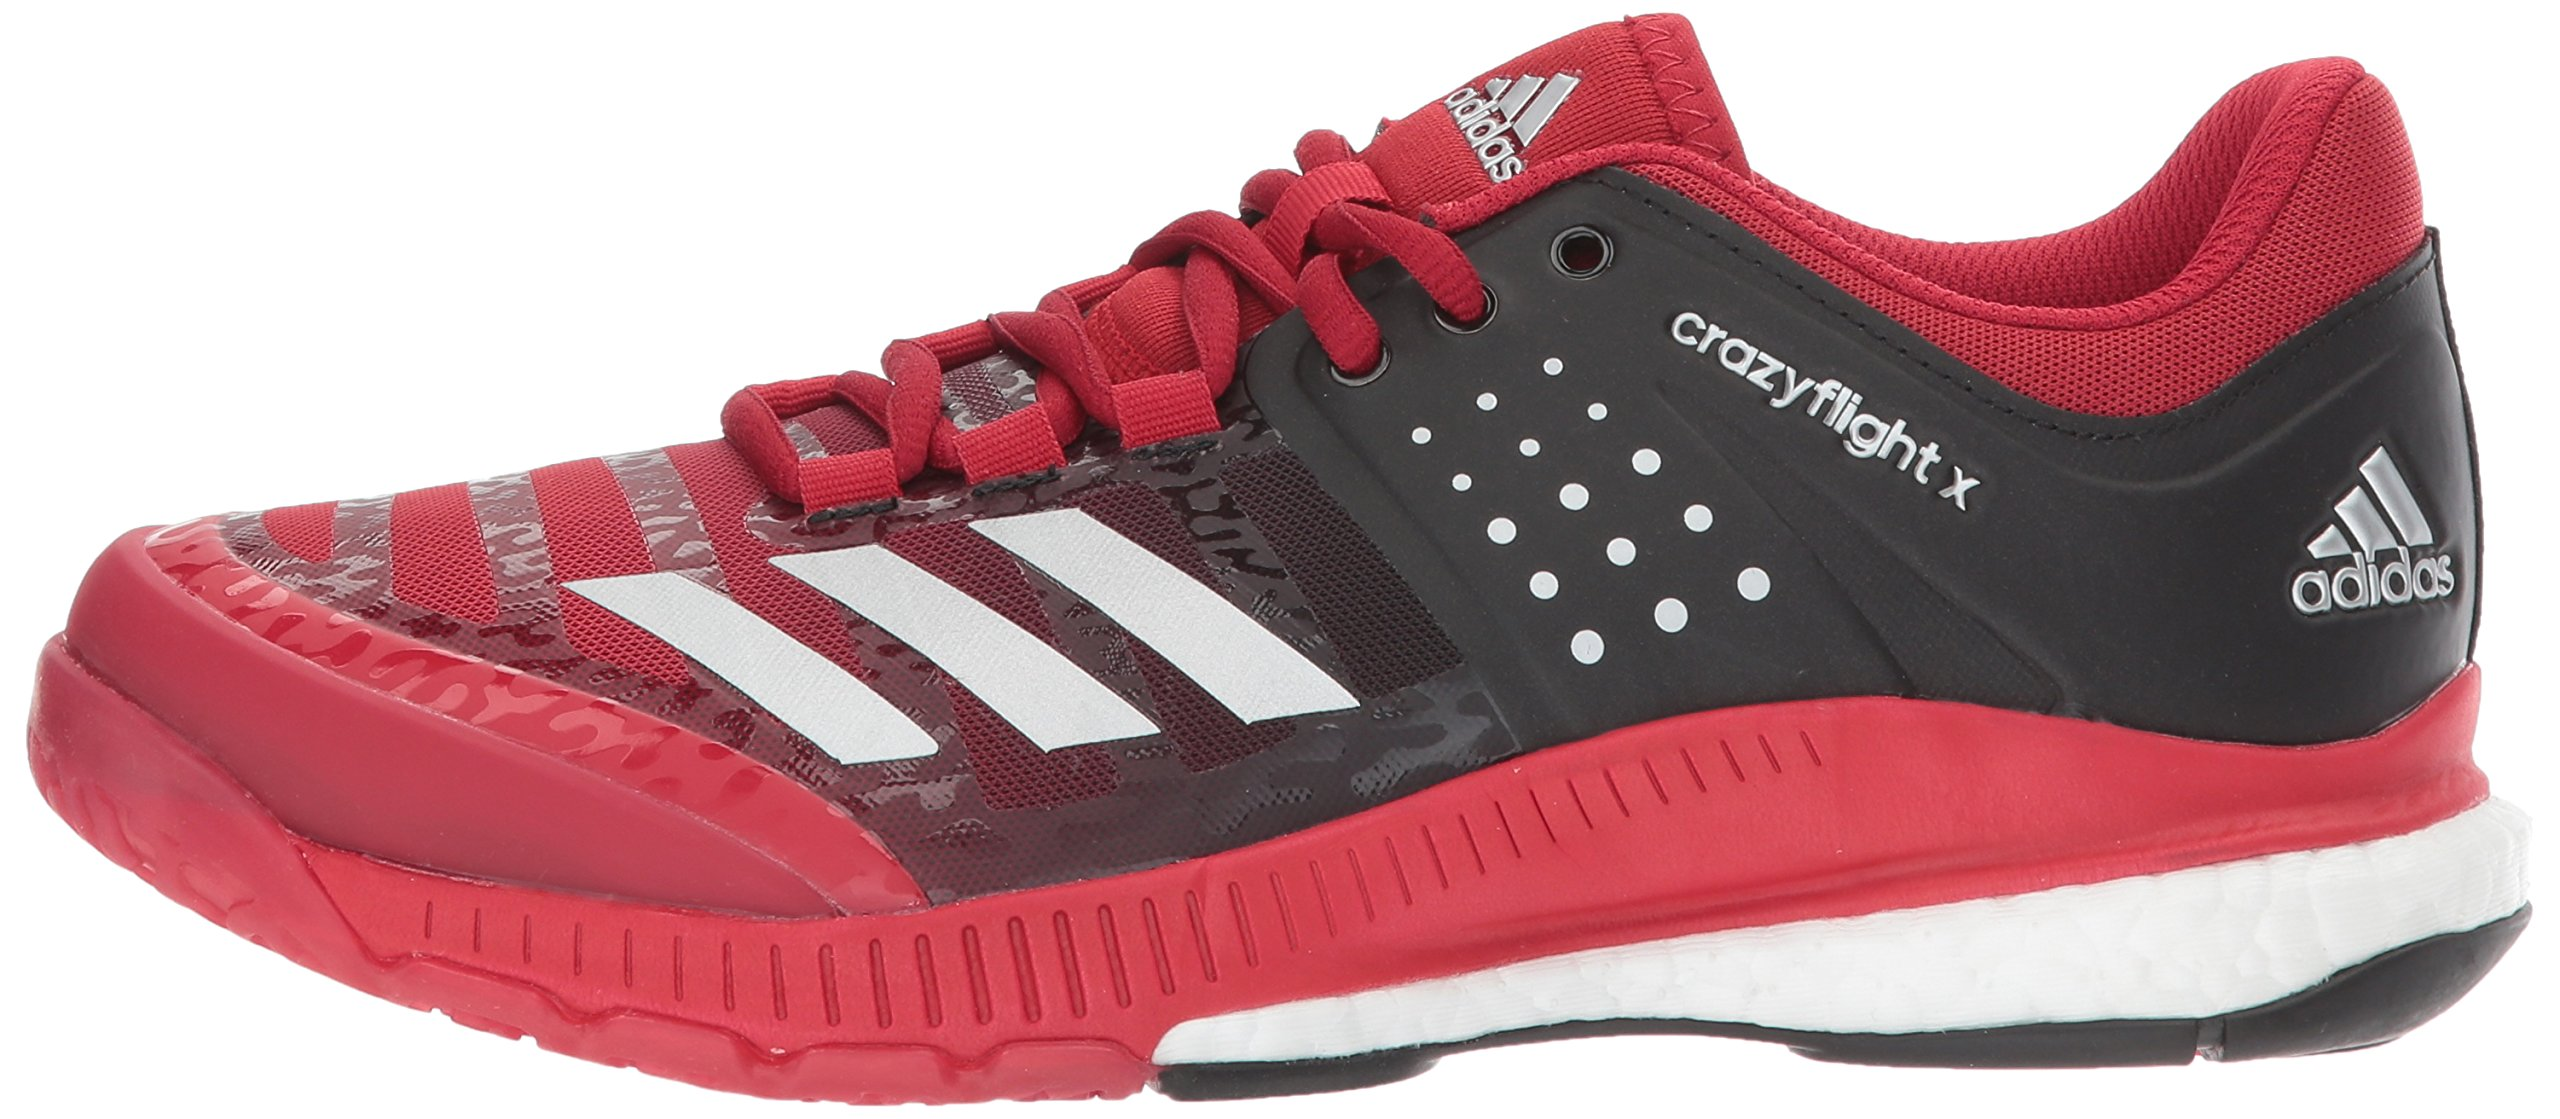 Adidas Women's Shoes Crazyflight X Volleyball Shoe Black/Metallic Silver/Power Red,7.5 by adidas Originals (Image #5)